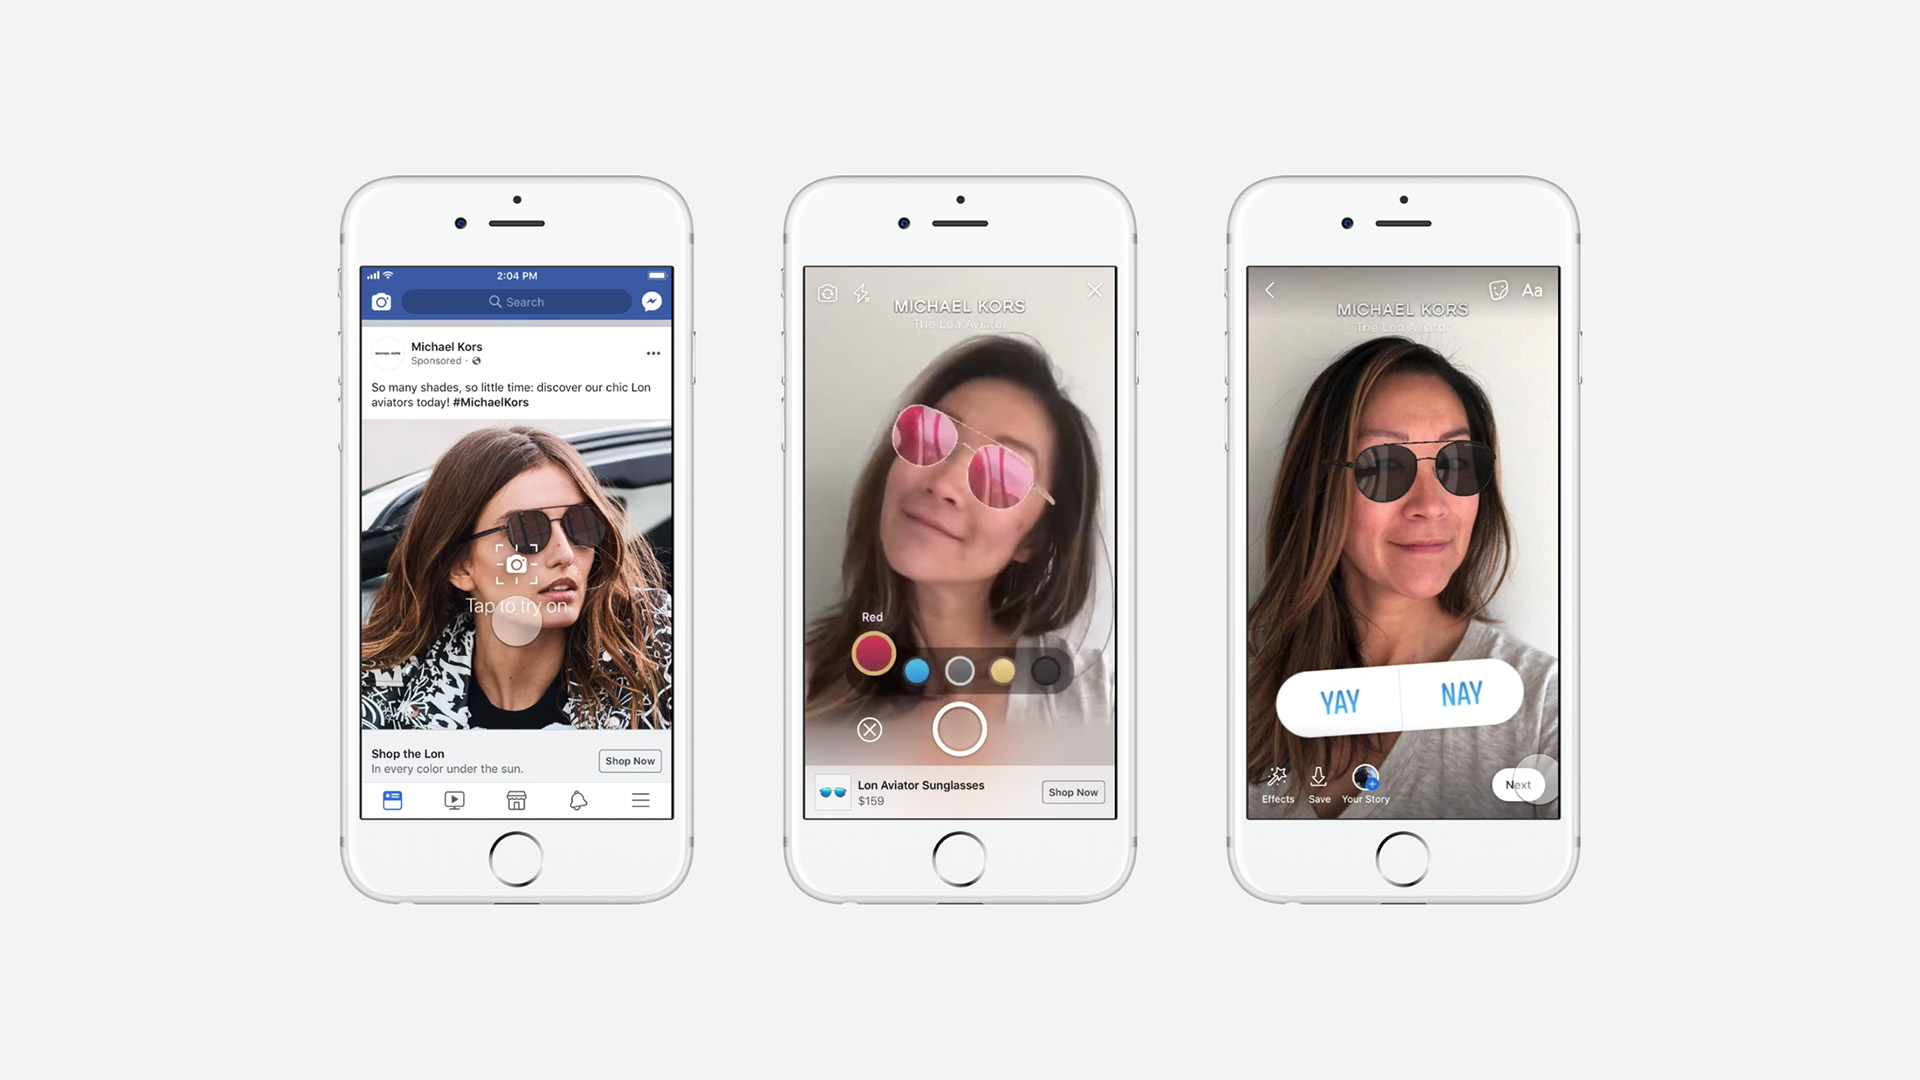 Facebook has made AR ads available through its Ad Manager